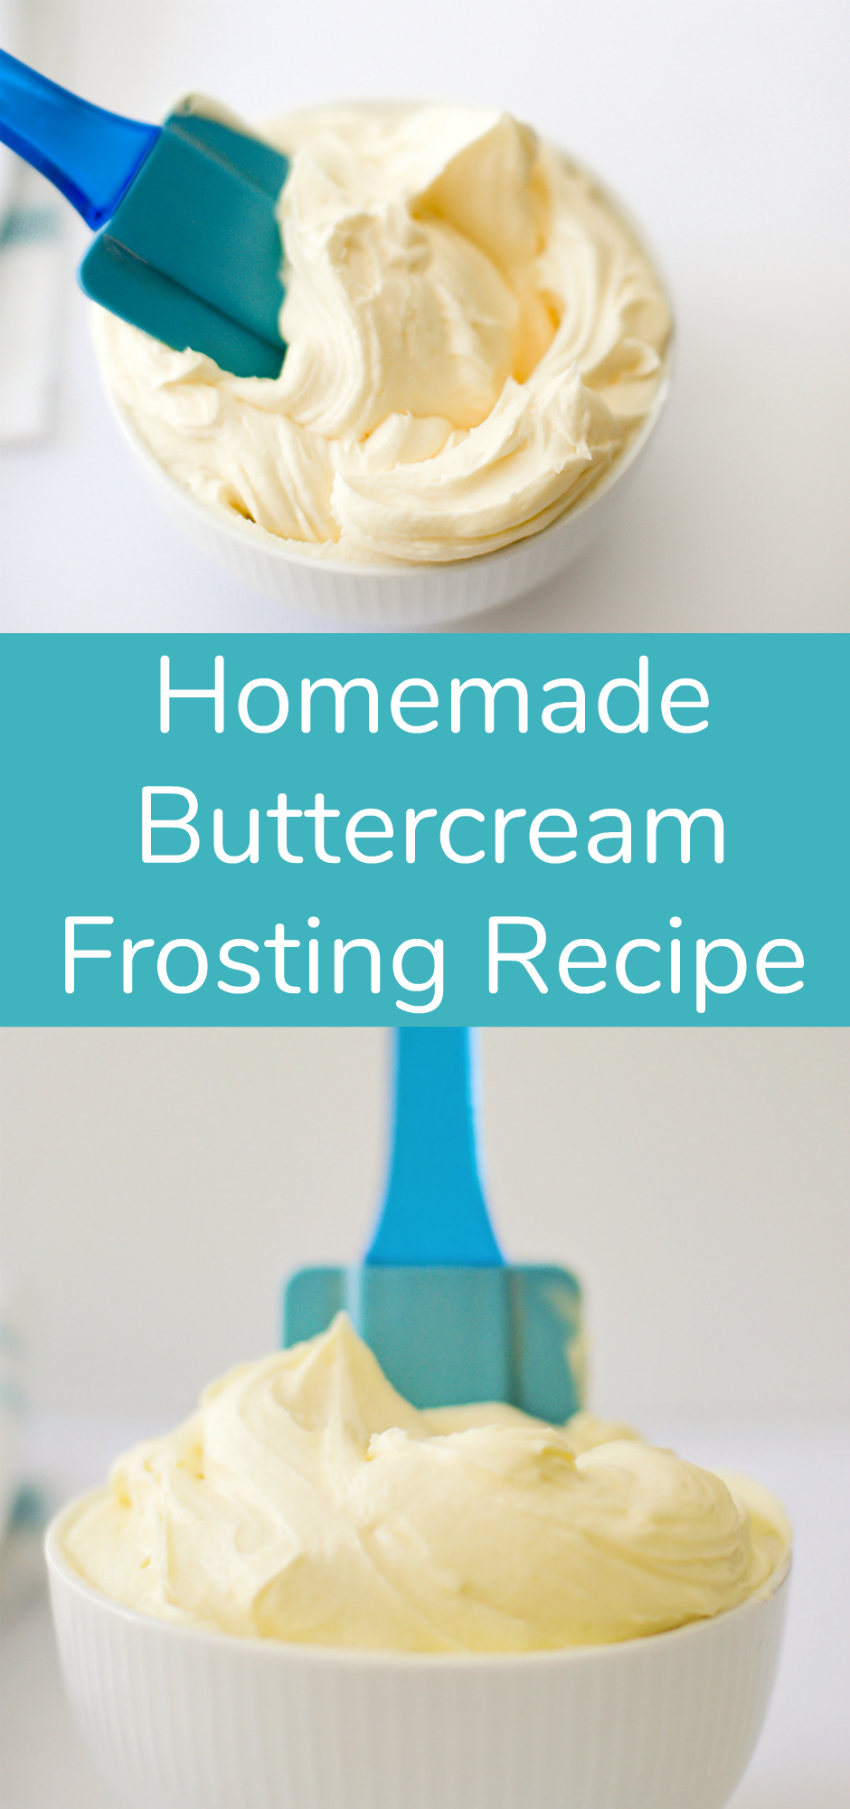 Homemade Buttercream Frosting Recipe